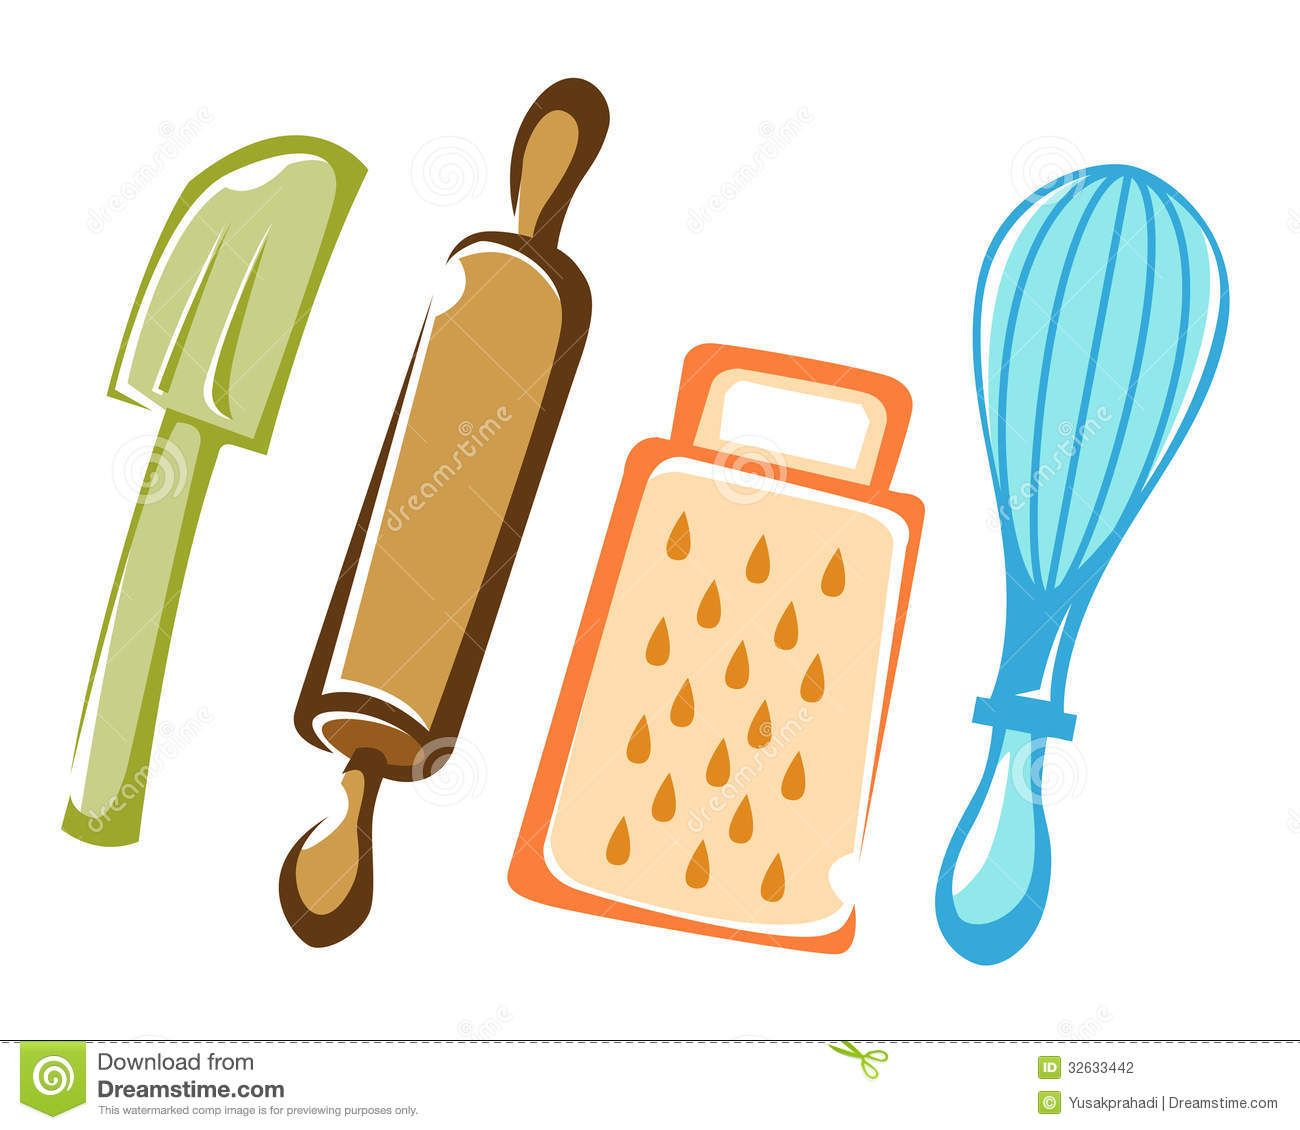 Kitchen Shears In Baking: Cooking And Baking Kitchen Tools Stock Photography